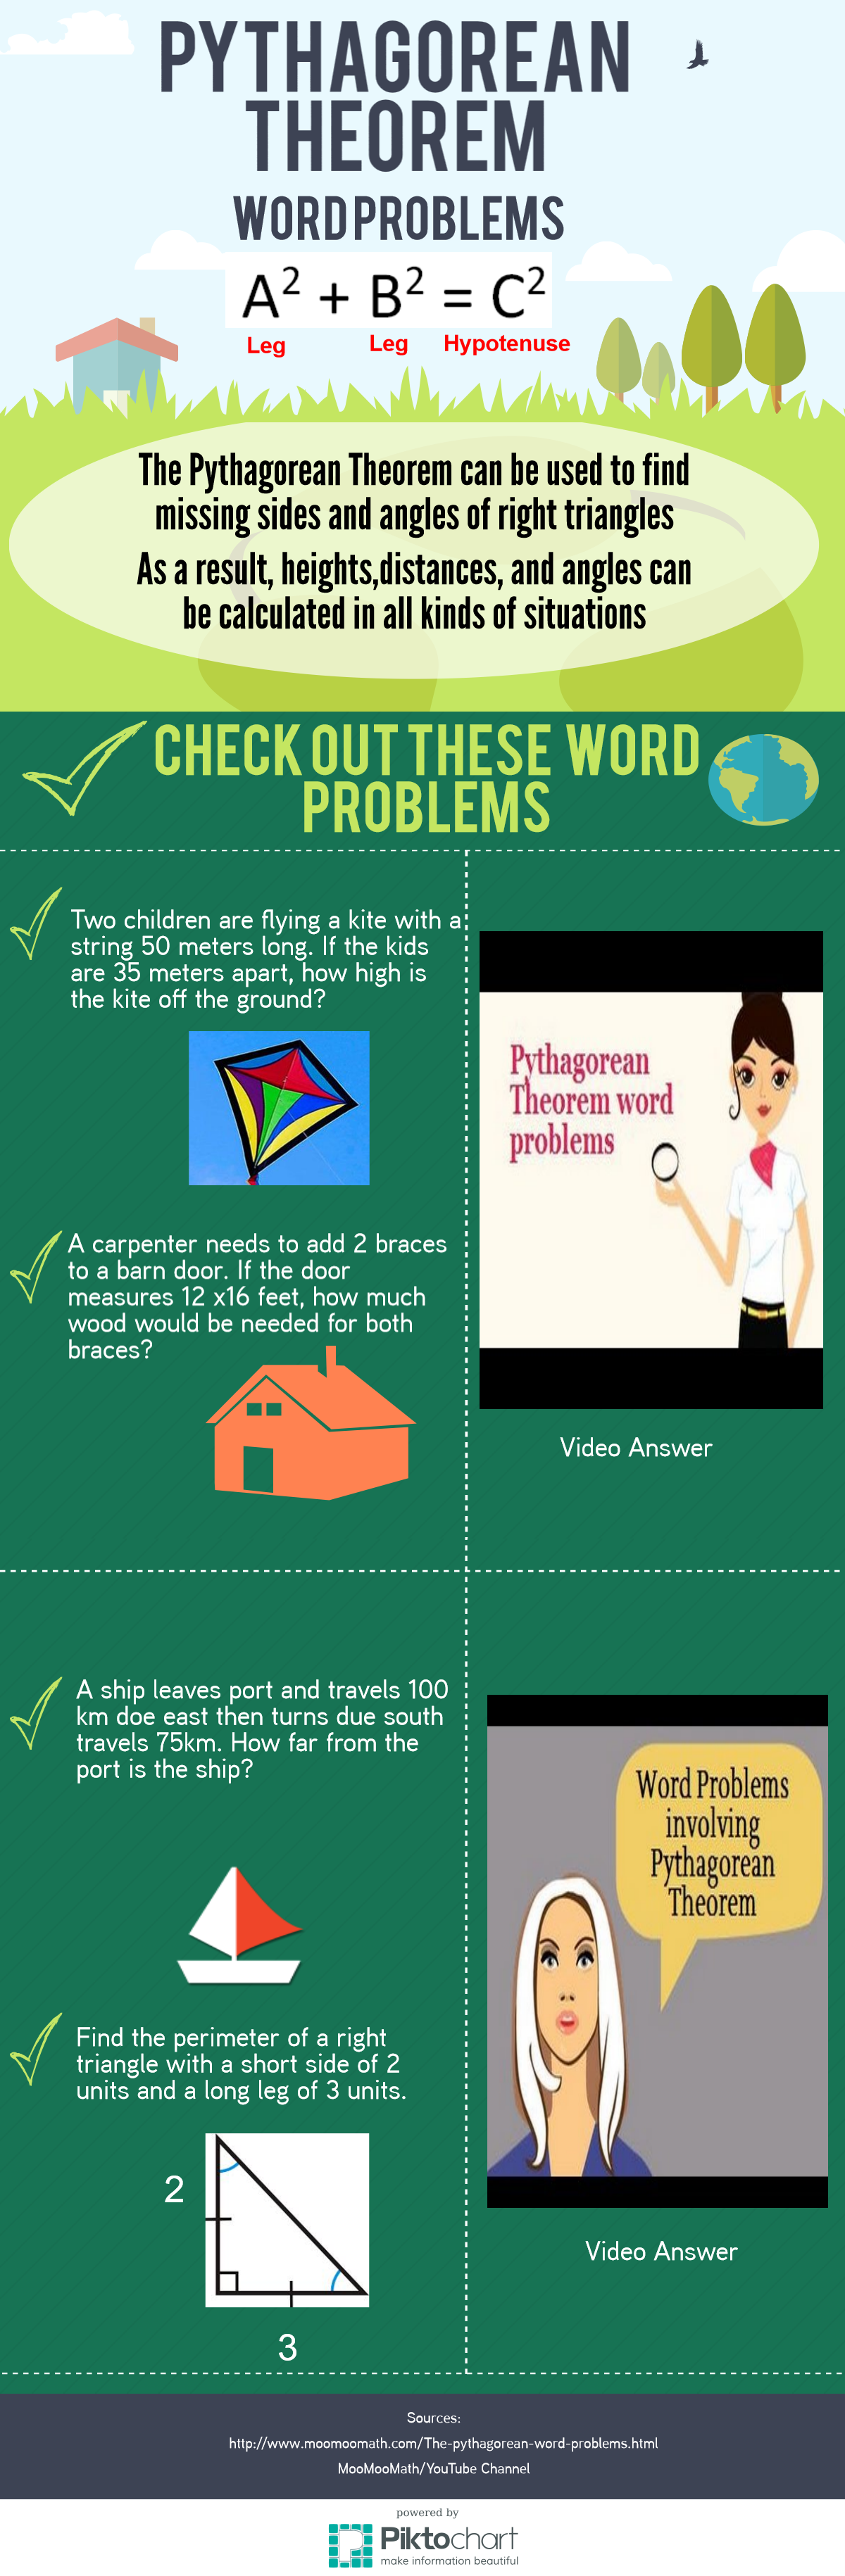 The Pythagorean Theorem Can Be Used In Geometry To Solve